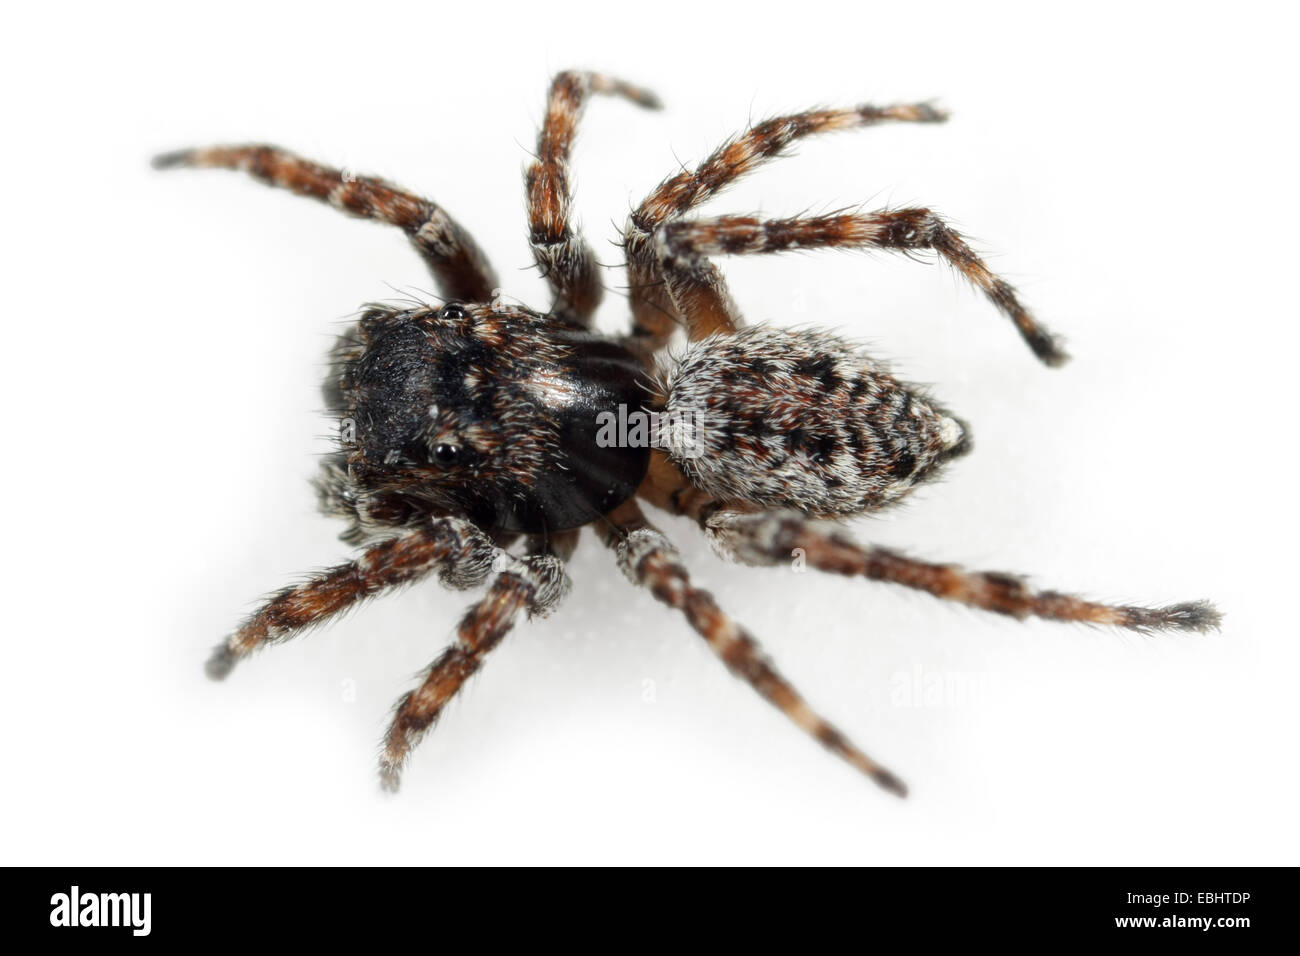 Male Sitticus pubescens, part of the famliy Salticidae, - Jumping spiders. - Stock Image